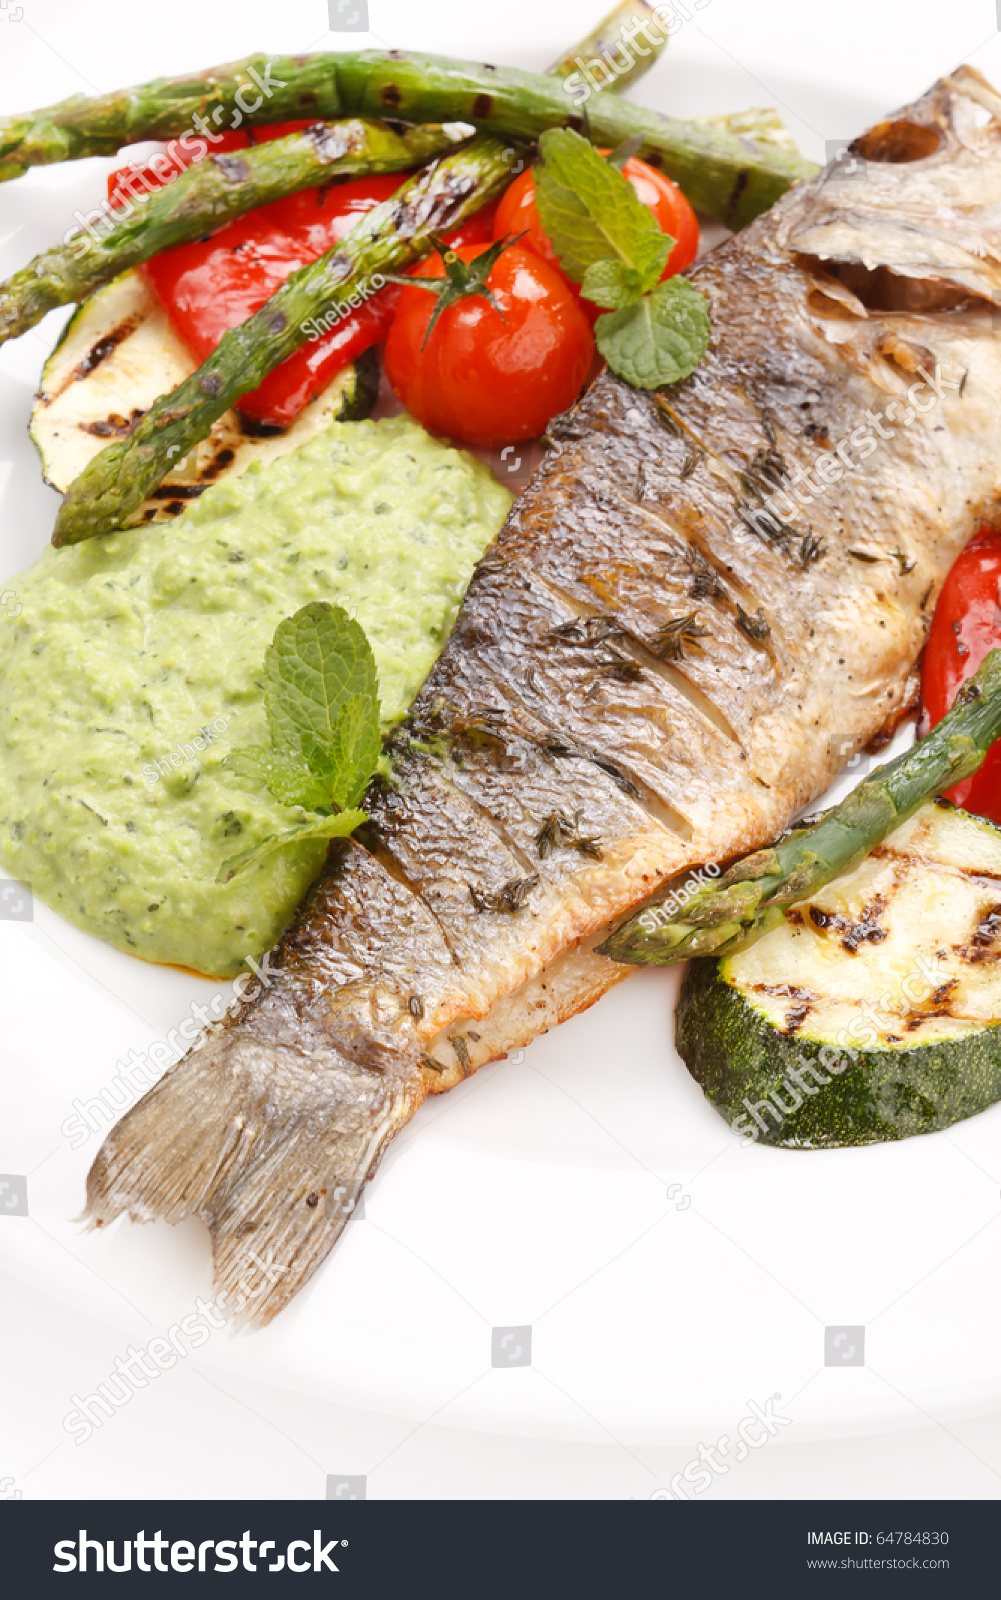 Grilled fish vegetables sauce stock photo 64784830 for Fish with vegetables